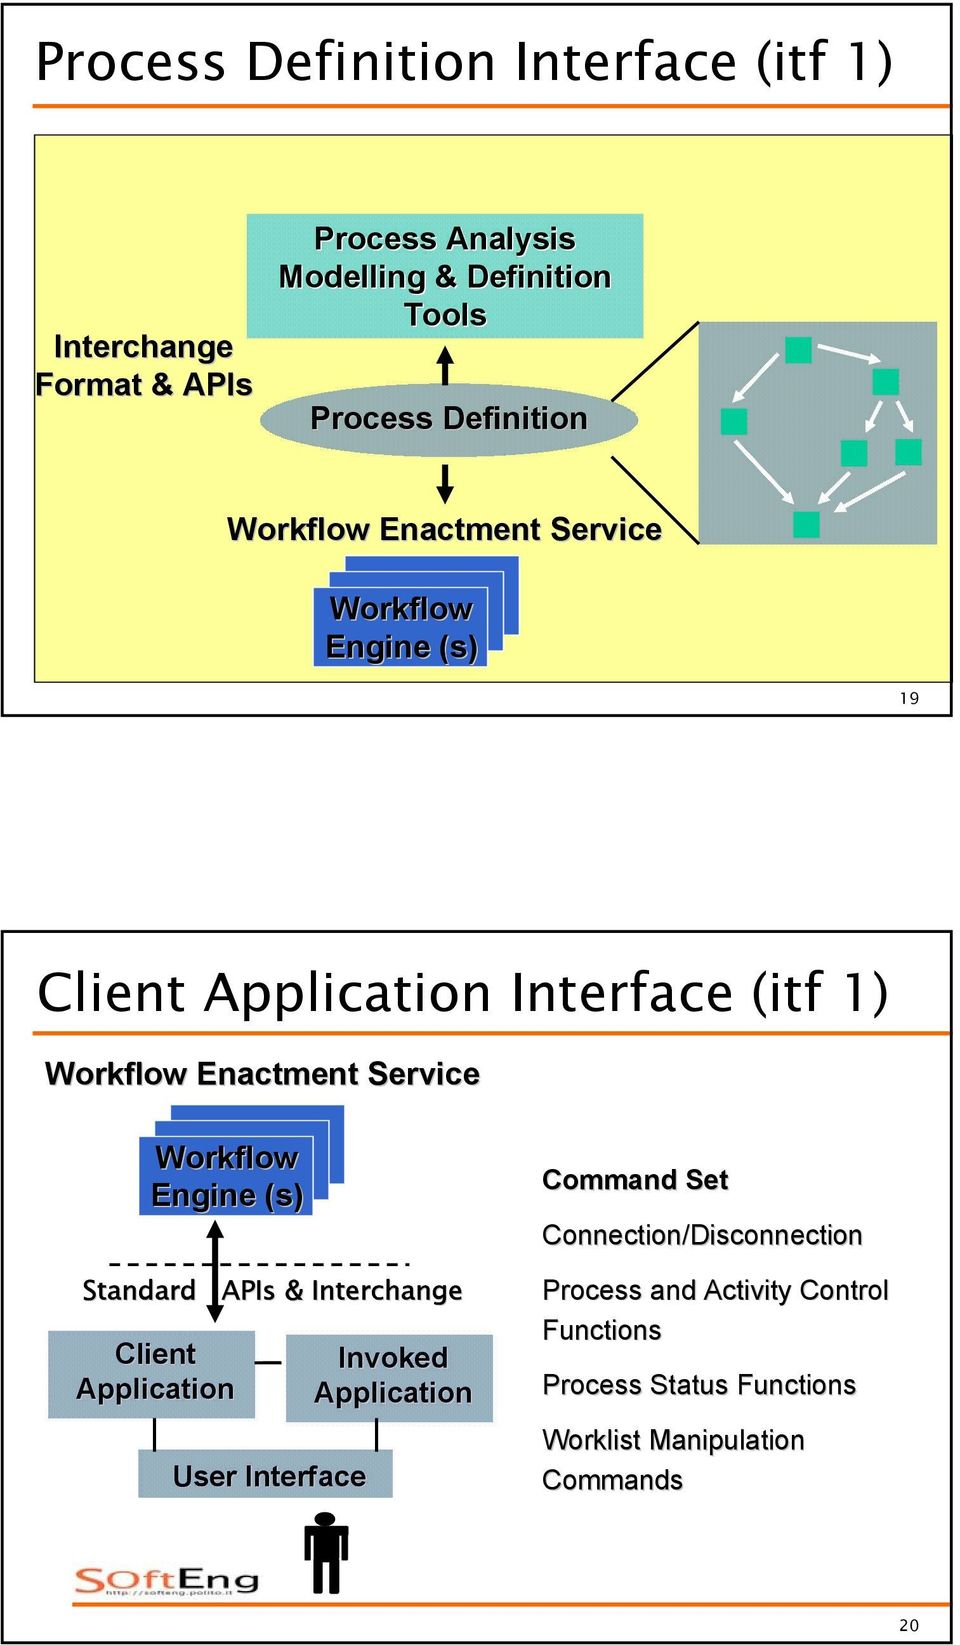 Standard APIs & Interchange Client Application User Interface Invoked Application Command Set